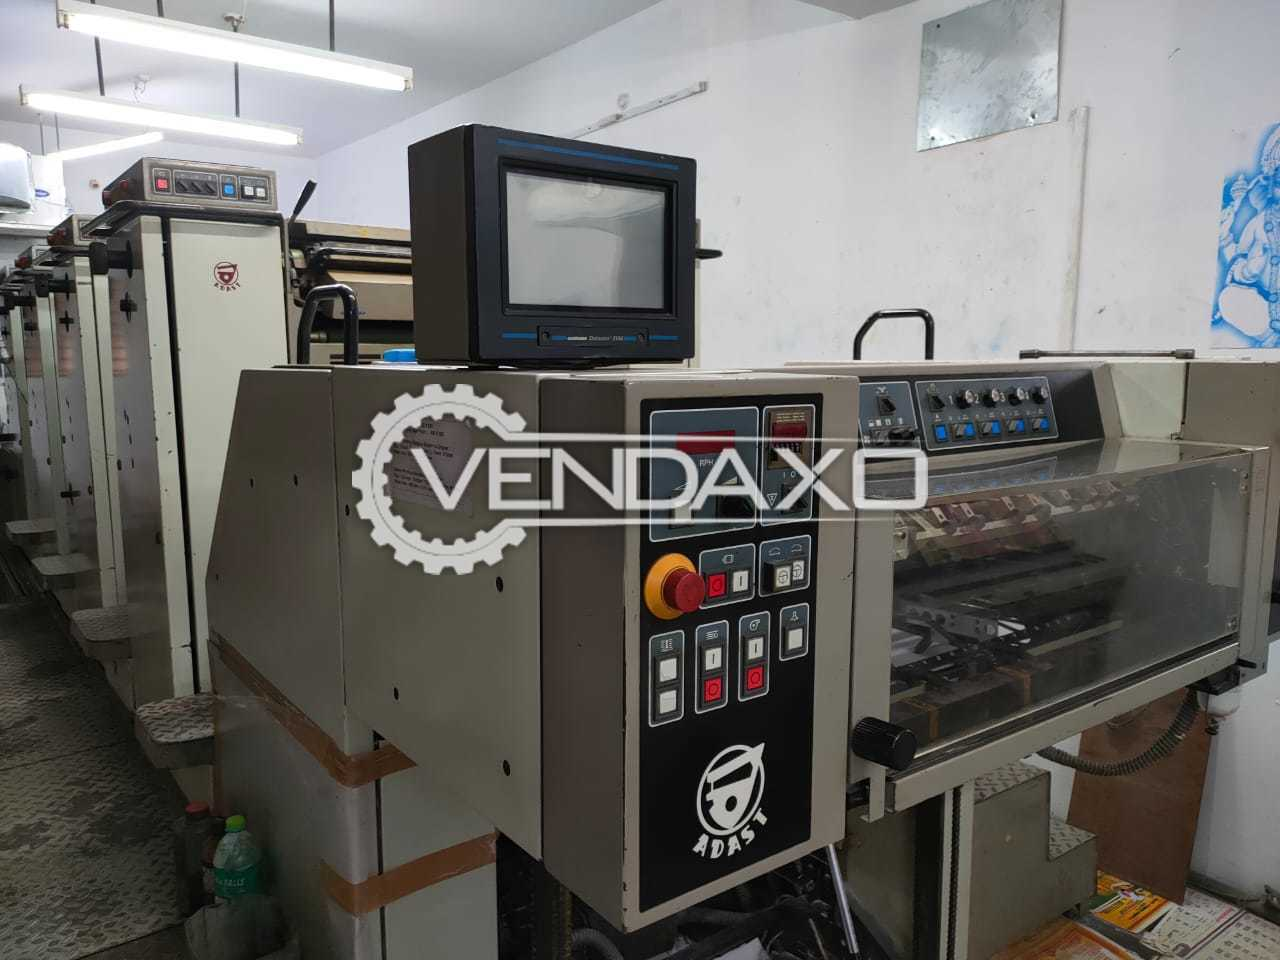 Adast Offset Printing Machine - 20 X 28 Inch, 4 Color